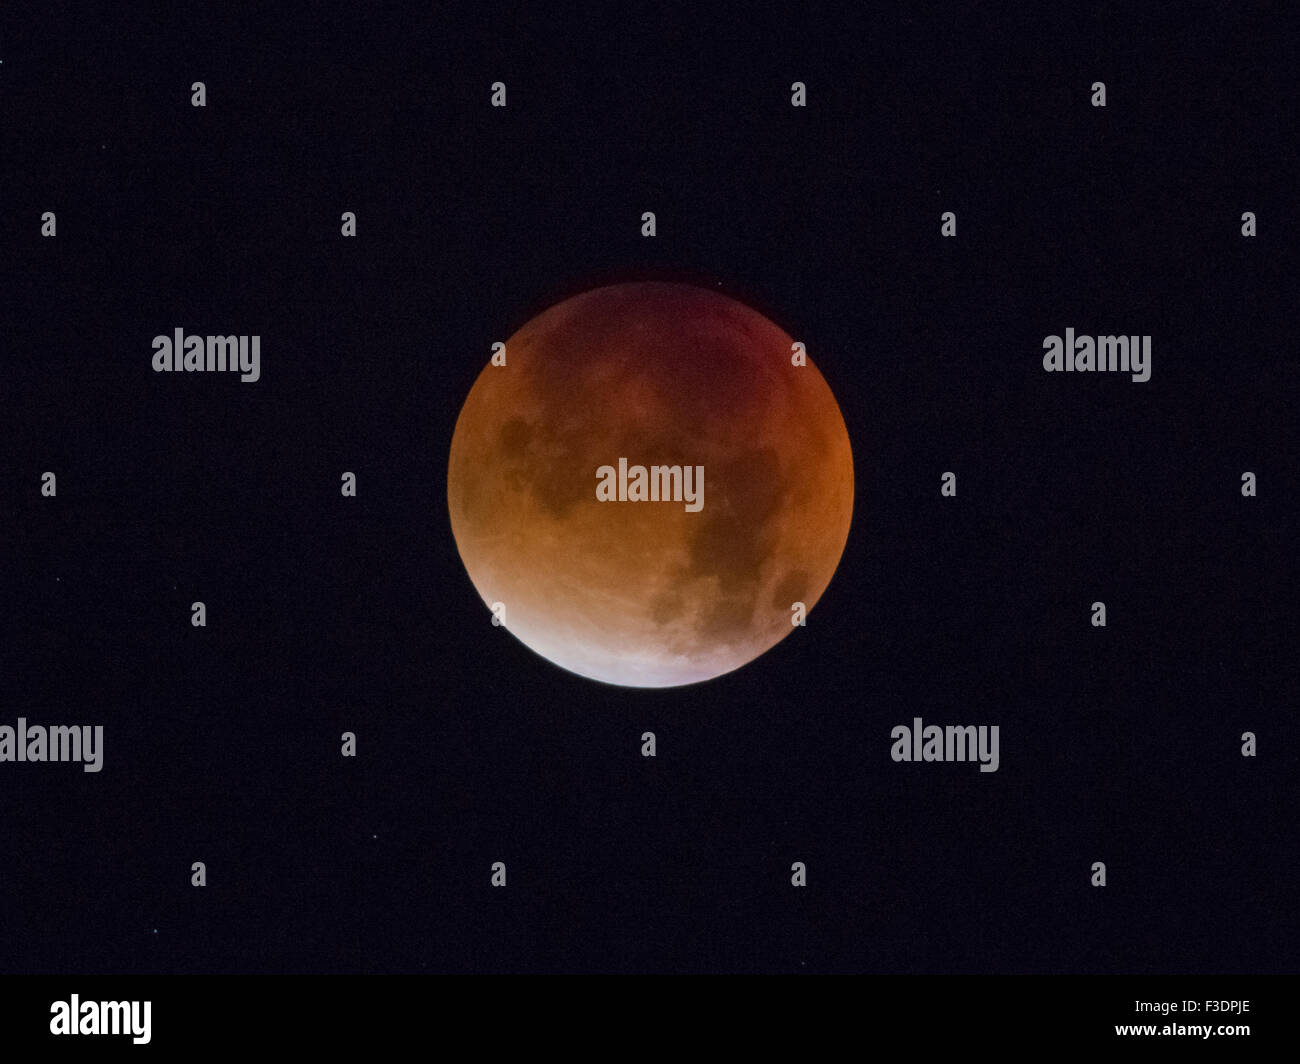 Total lunar eclipse, full moon, 28/09/2015, 04:22:44, Oberhof, Thuringia, Germany - Stock Image